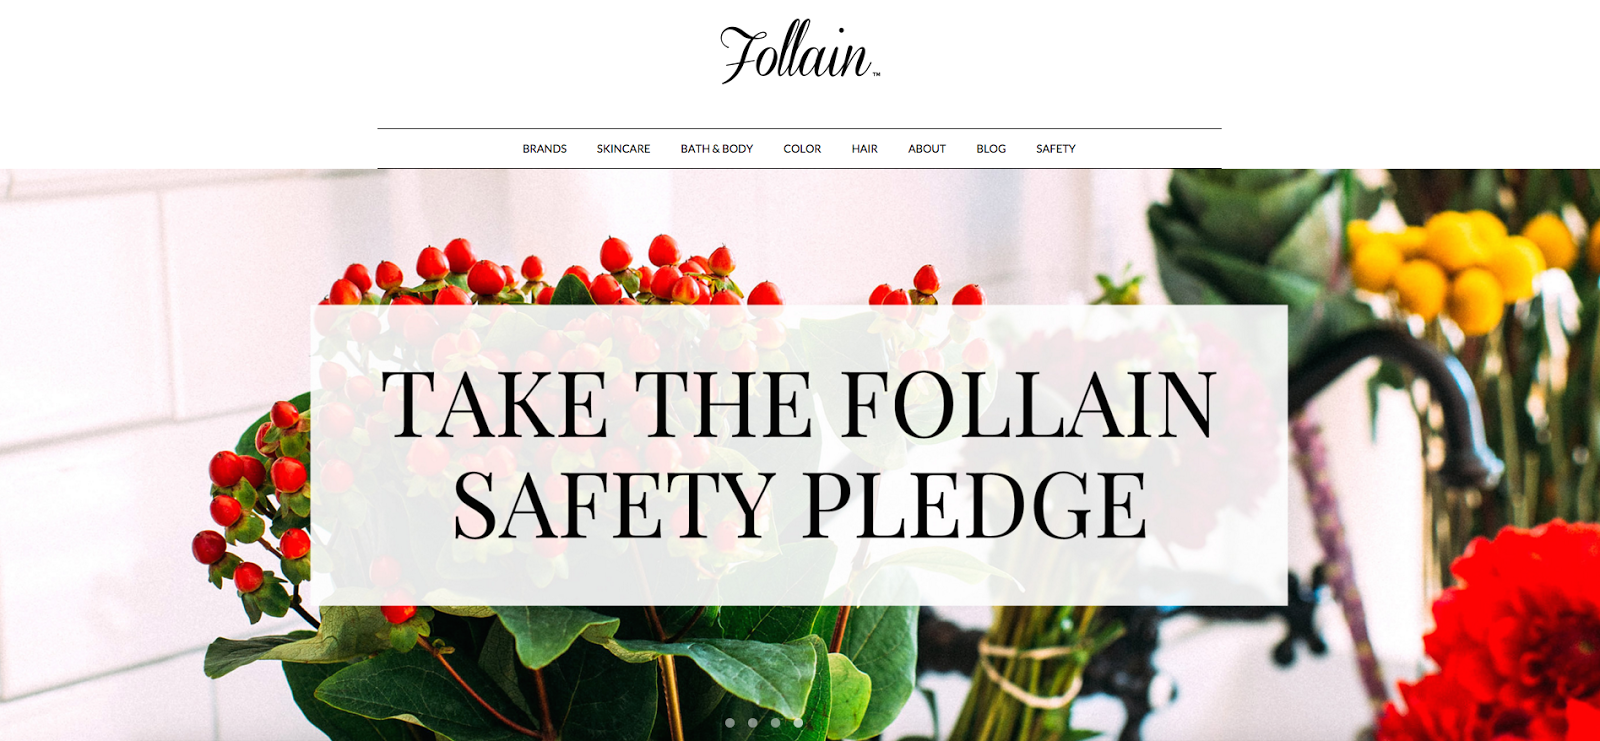 beauty products, follian, shop follians, health, beauty, clean, natural